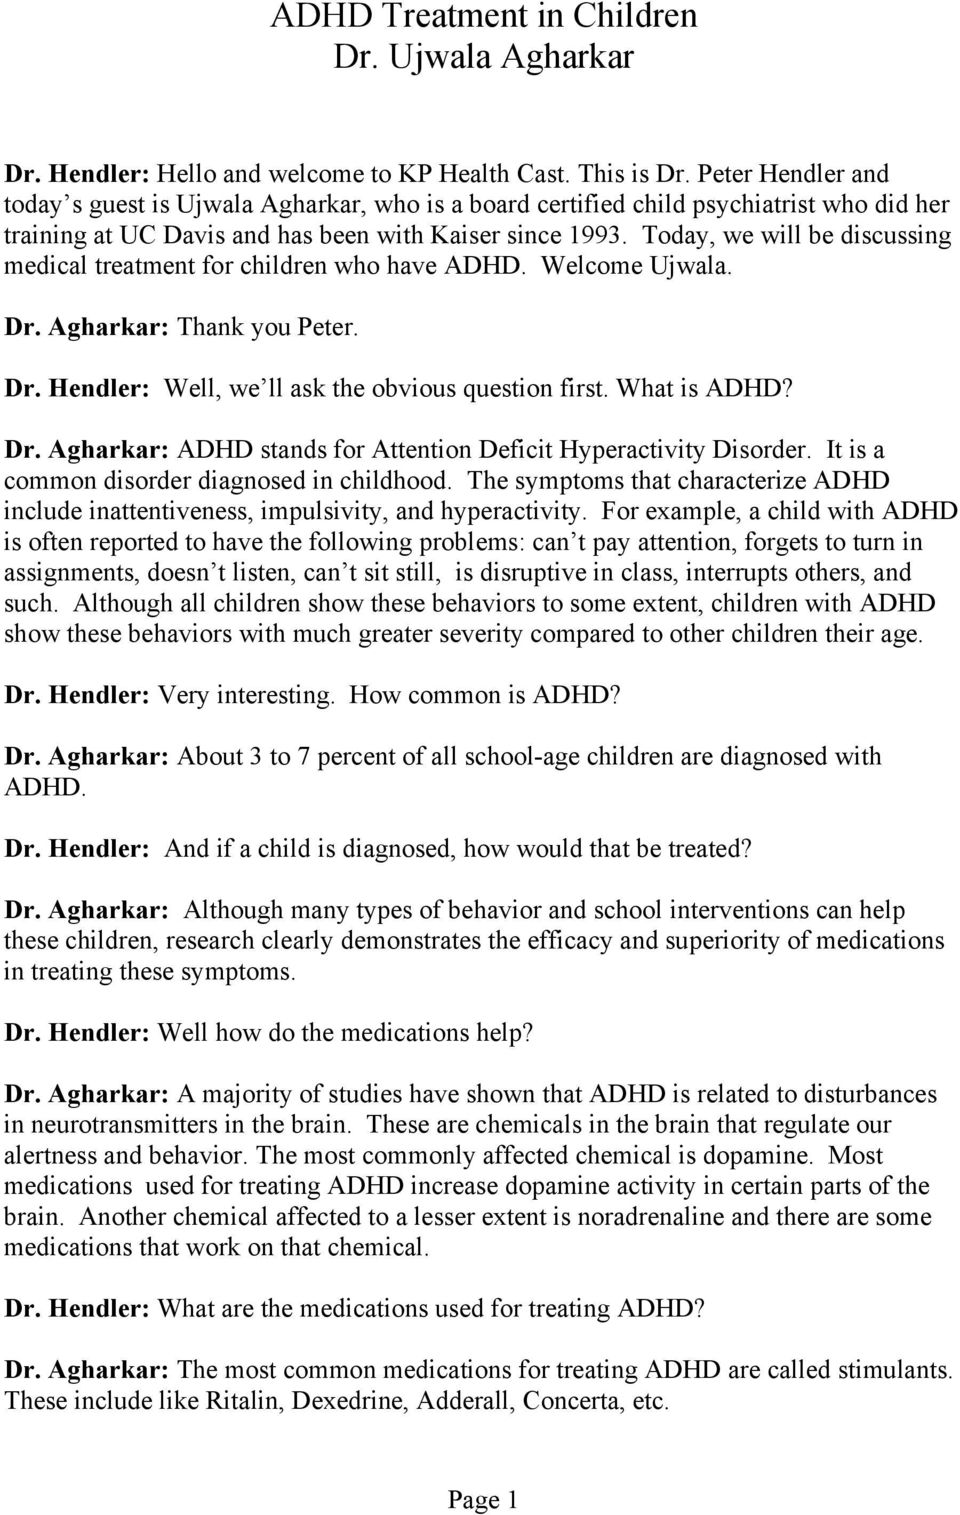 Today, we will be discussing medical treatment for children who have ADHD. Welcome Ujwala. Dr. Agharkar: Thank you Peter. Dr. Hendler: Well, we ll ask the obvious question first. What is ADHD? Dr. Agharkar: ADHD stands for Attention Deficit Hyperactivity Disorder.